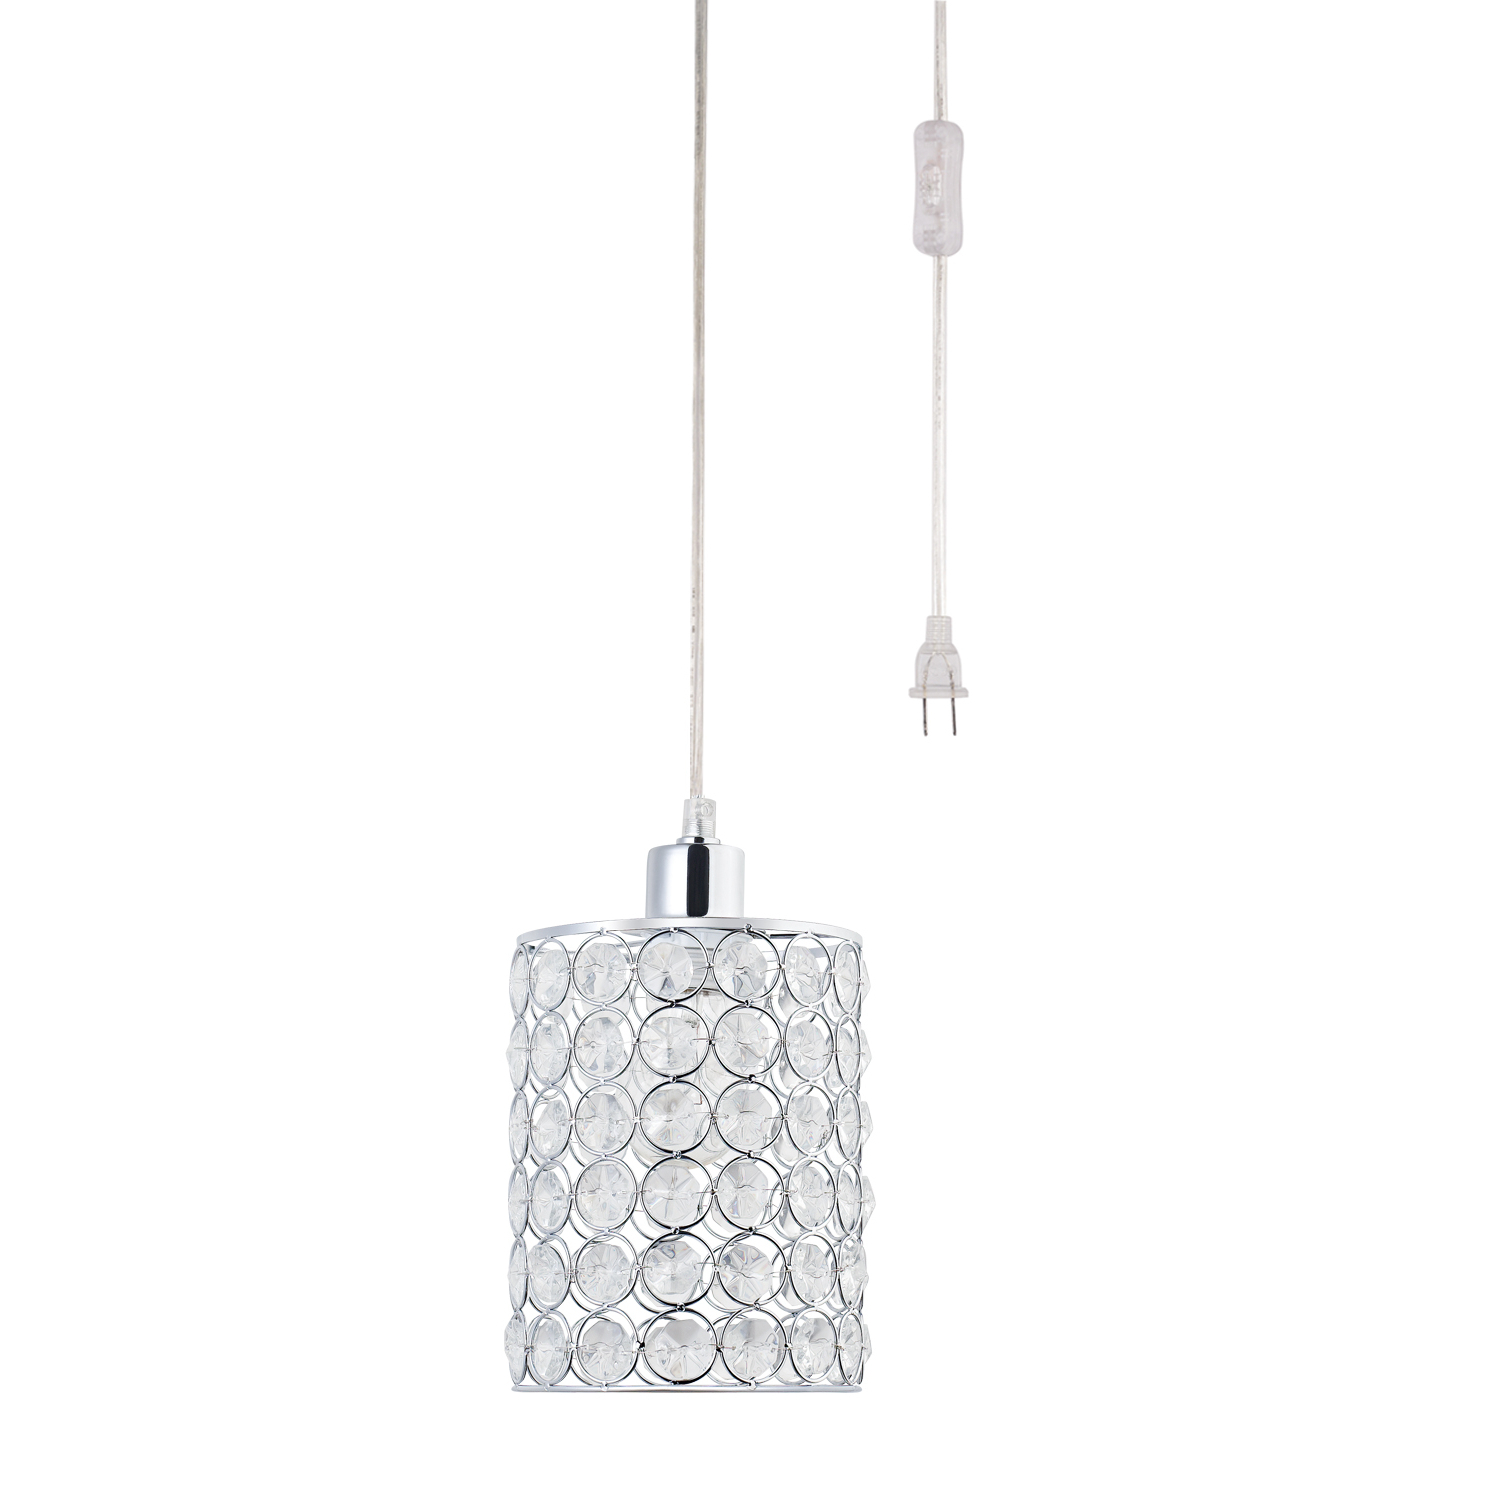 Fashionable Globe Electric Angelica 1 Light Caged Crystal & Polished Chrome Cylindrical Plug In Pendant,65142 Pertaining To Novogratz Vintage 5 Light Kitchen Island Bulb Pendants (View 19 of 20)